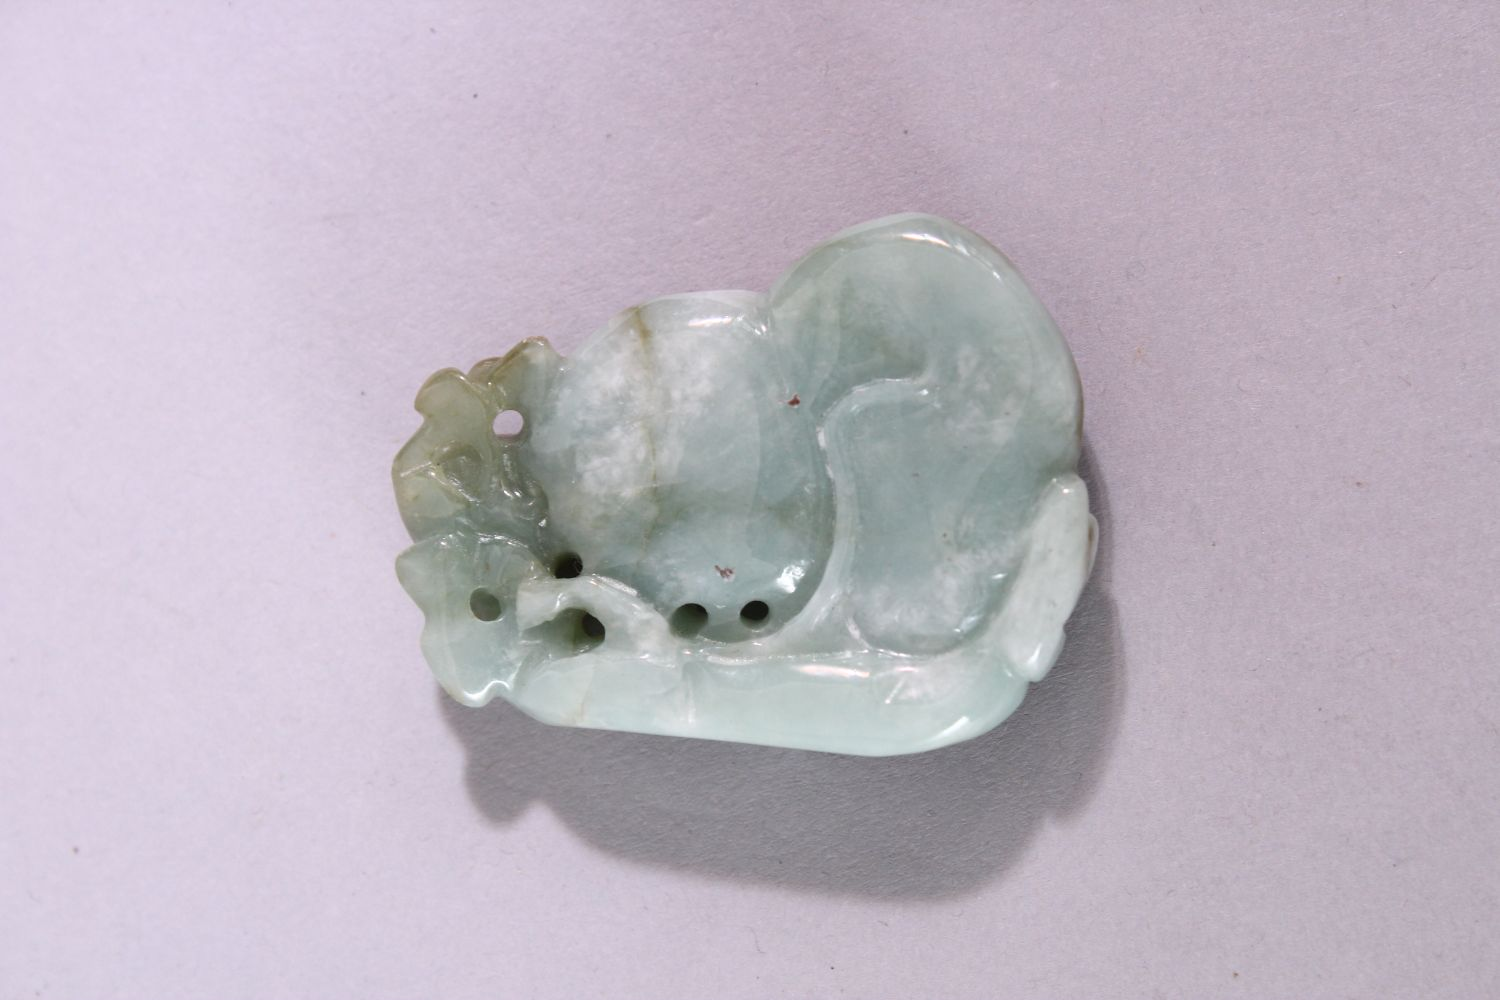 A CHINESE CARVED AND PIERCED JADE / JADITE AMULET of a guord, 5cm x 4cm. - Image 2 of 2